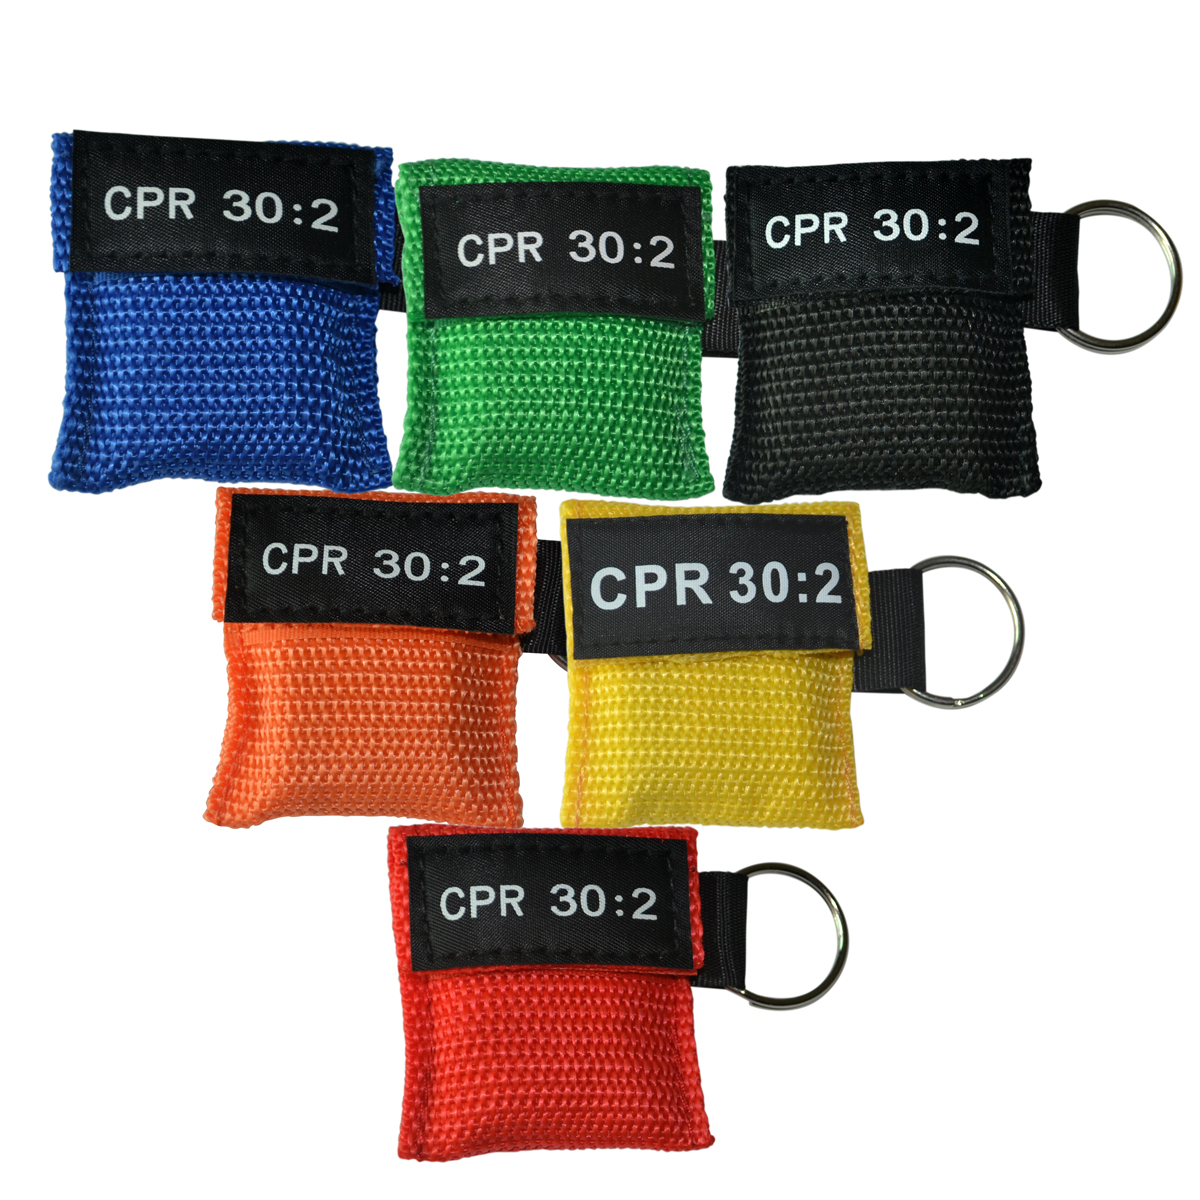 20 Pcs/lot 30:2 New CPR Face Shield  Mouth To Mouth Rescue First Aid Training Face Mask For Teaching Resuscitator